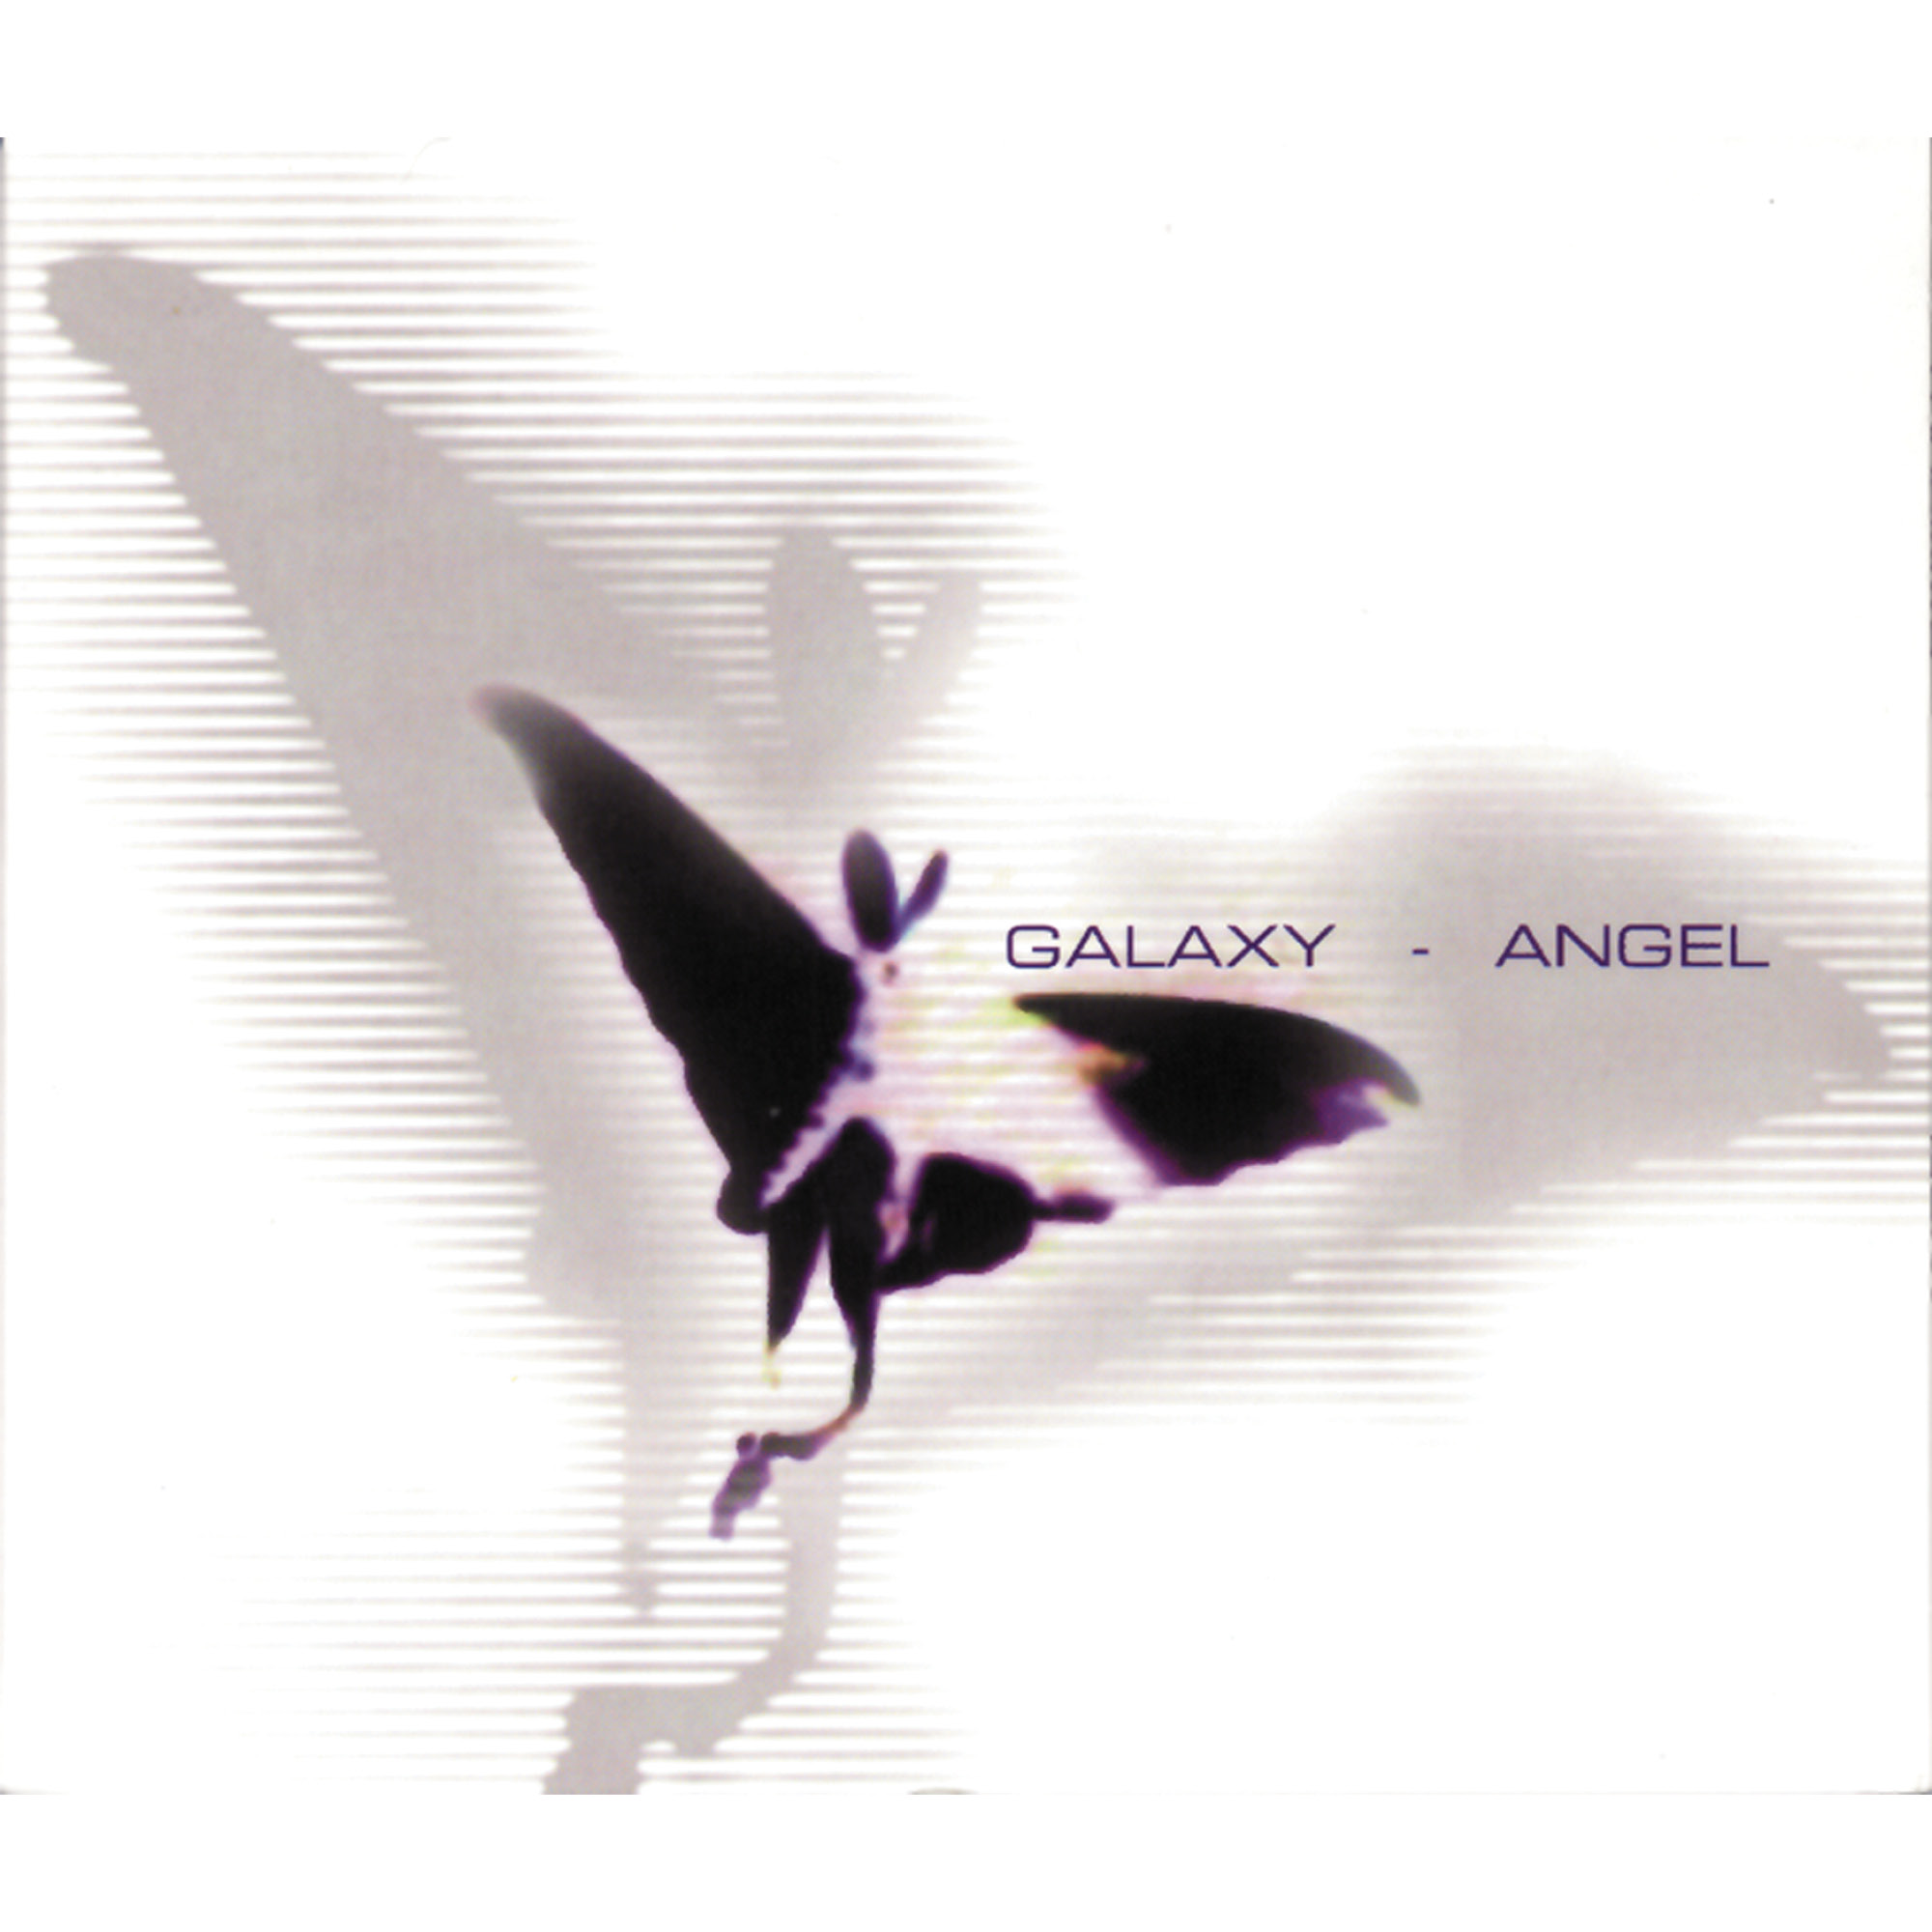 Galaxy - Angel - BLUE ROOM RELEASED 1998